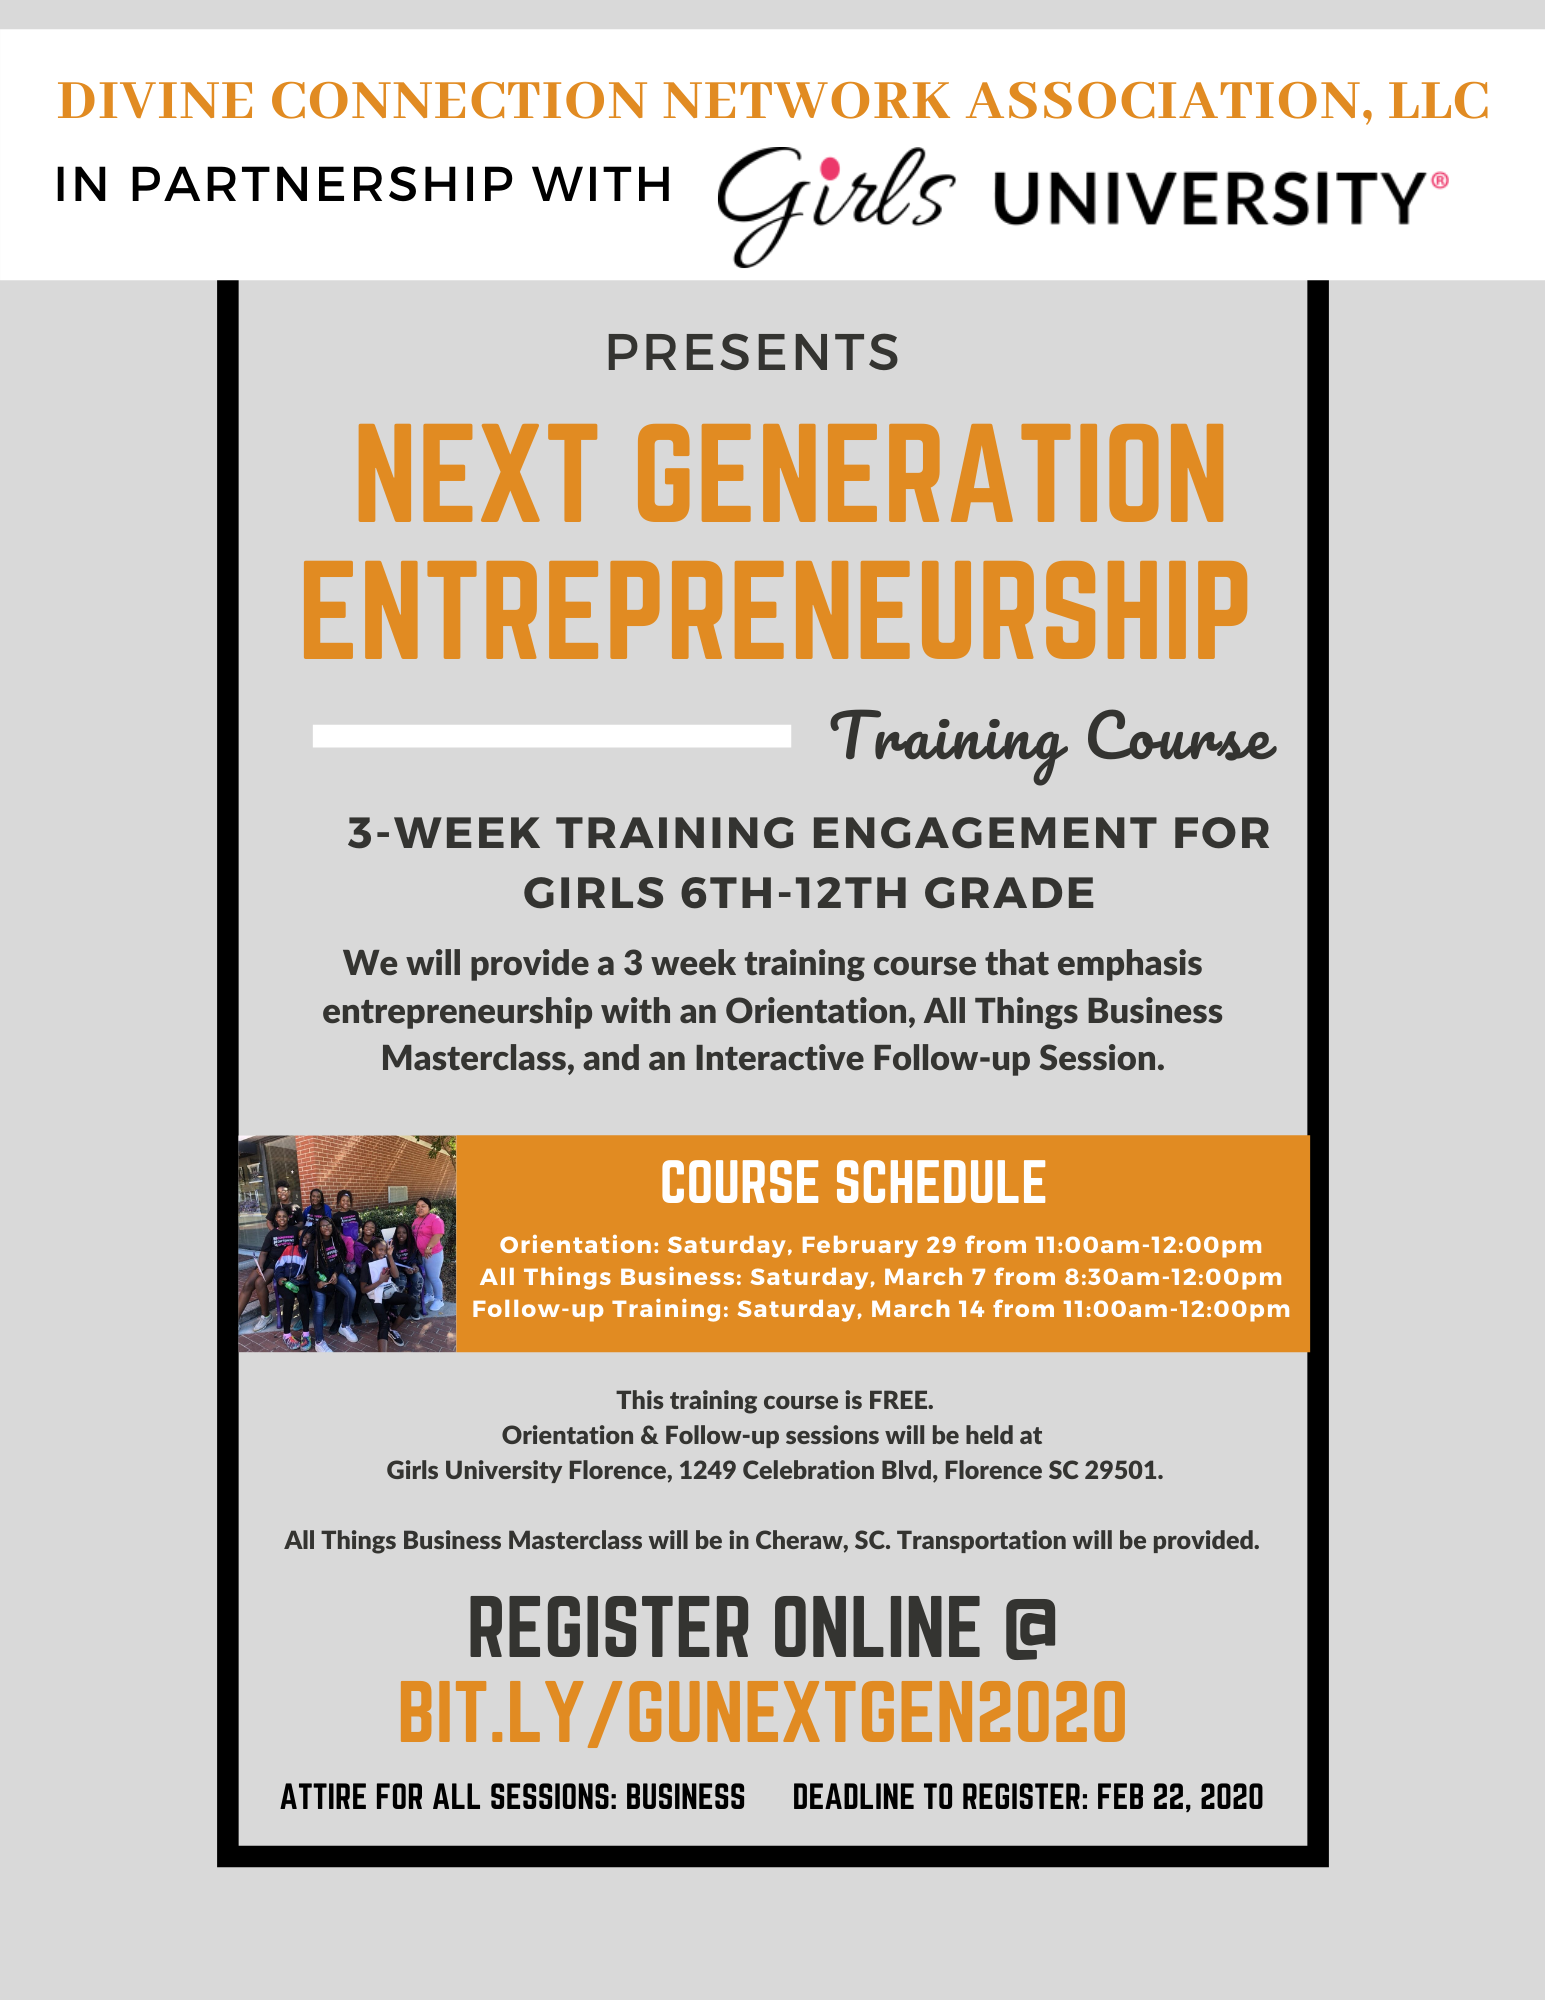 Next Generation Entrepreneurship Training Course